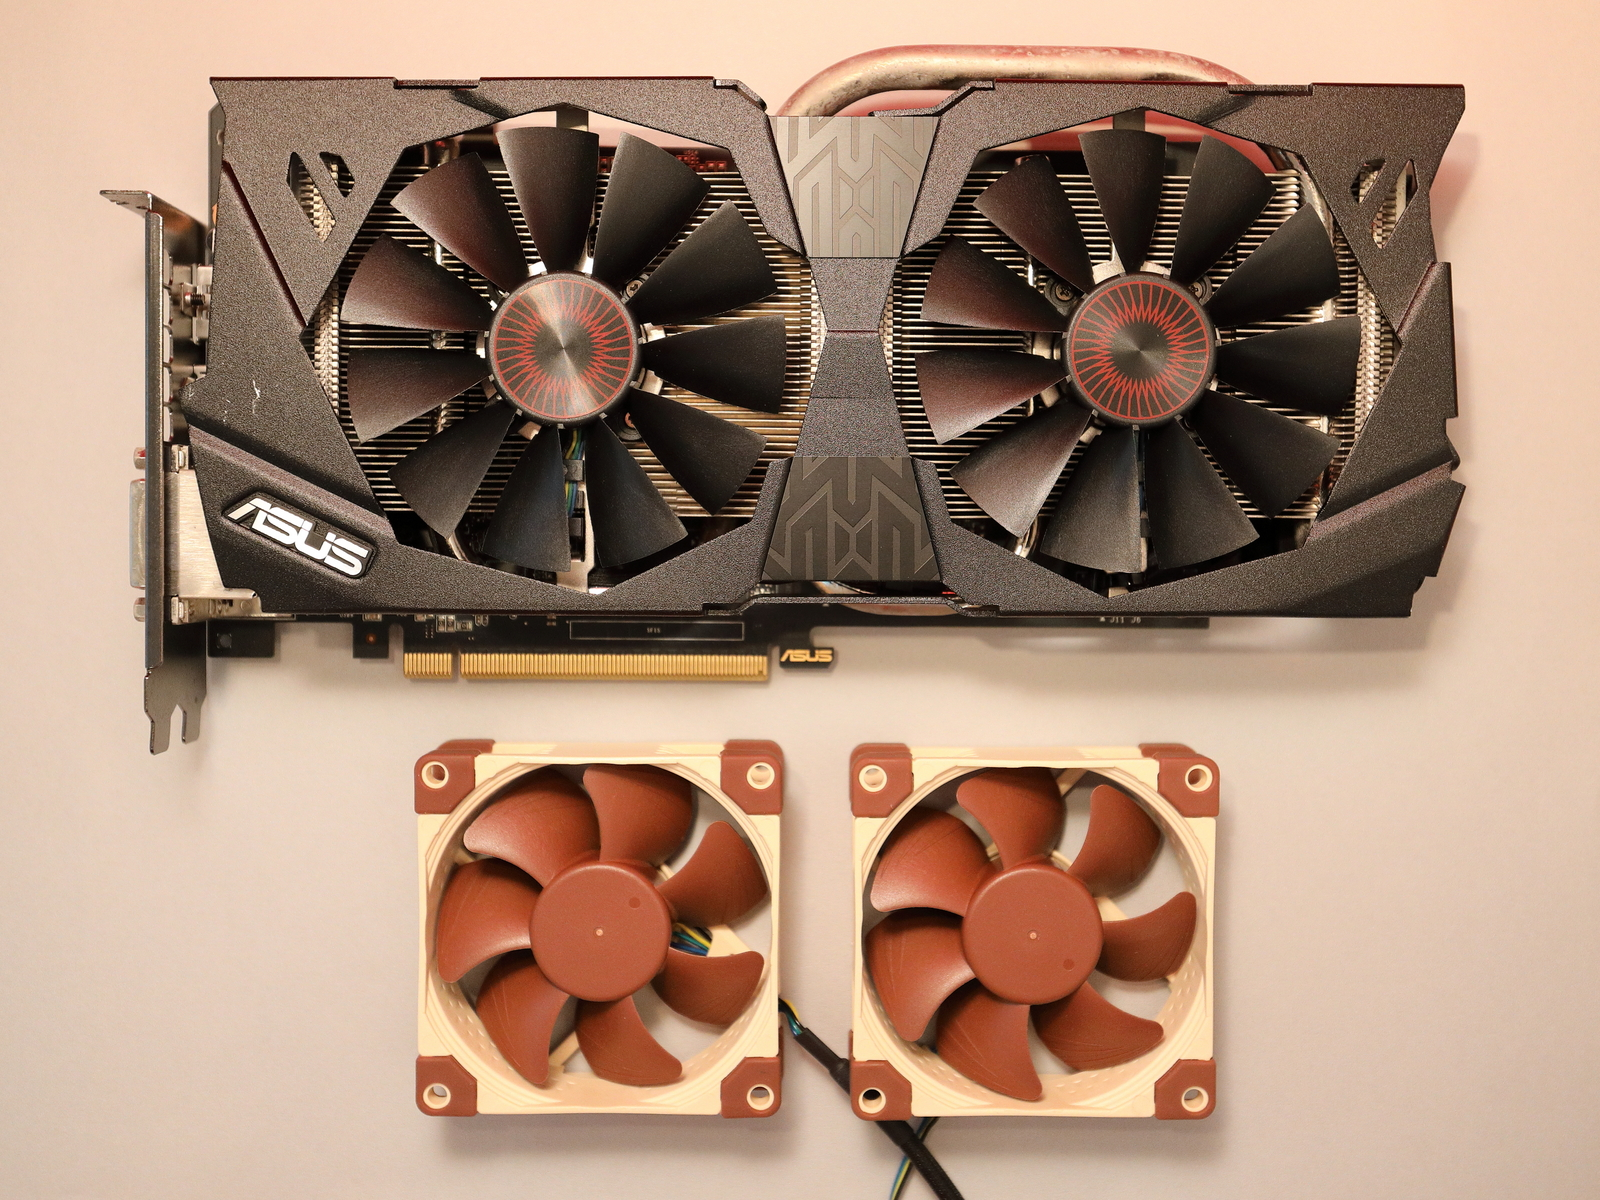 Modding My Graphic Card With Noctua Fans The Fancy Obsession Switch Wiring Pc Fan Cool Your Guide To A Very Highly Addictive World